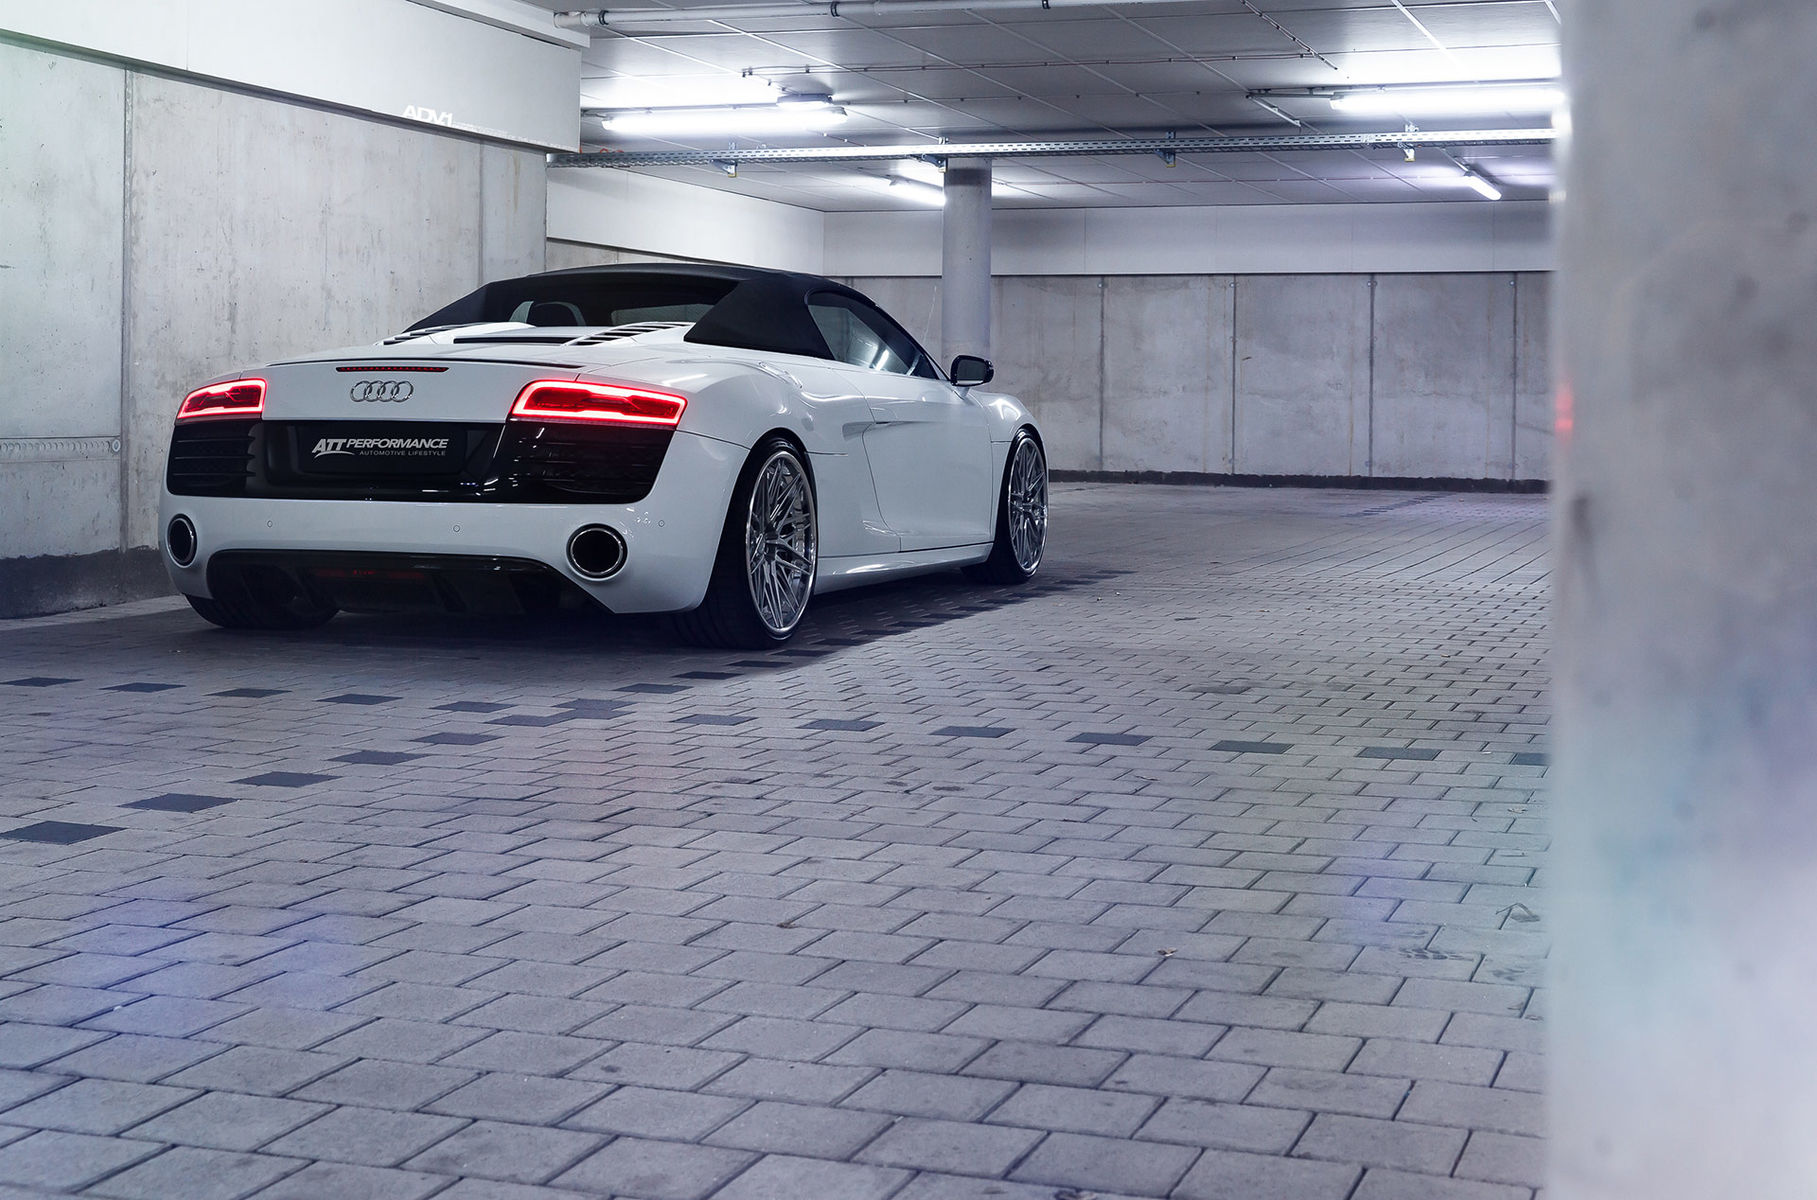 Audi R8 | Audi R8 Spyder - ADV1 ADV10 Track Spec Advanced Series Wheels